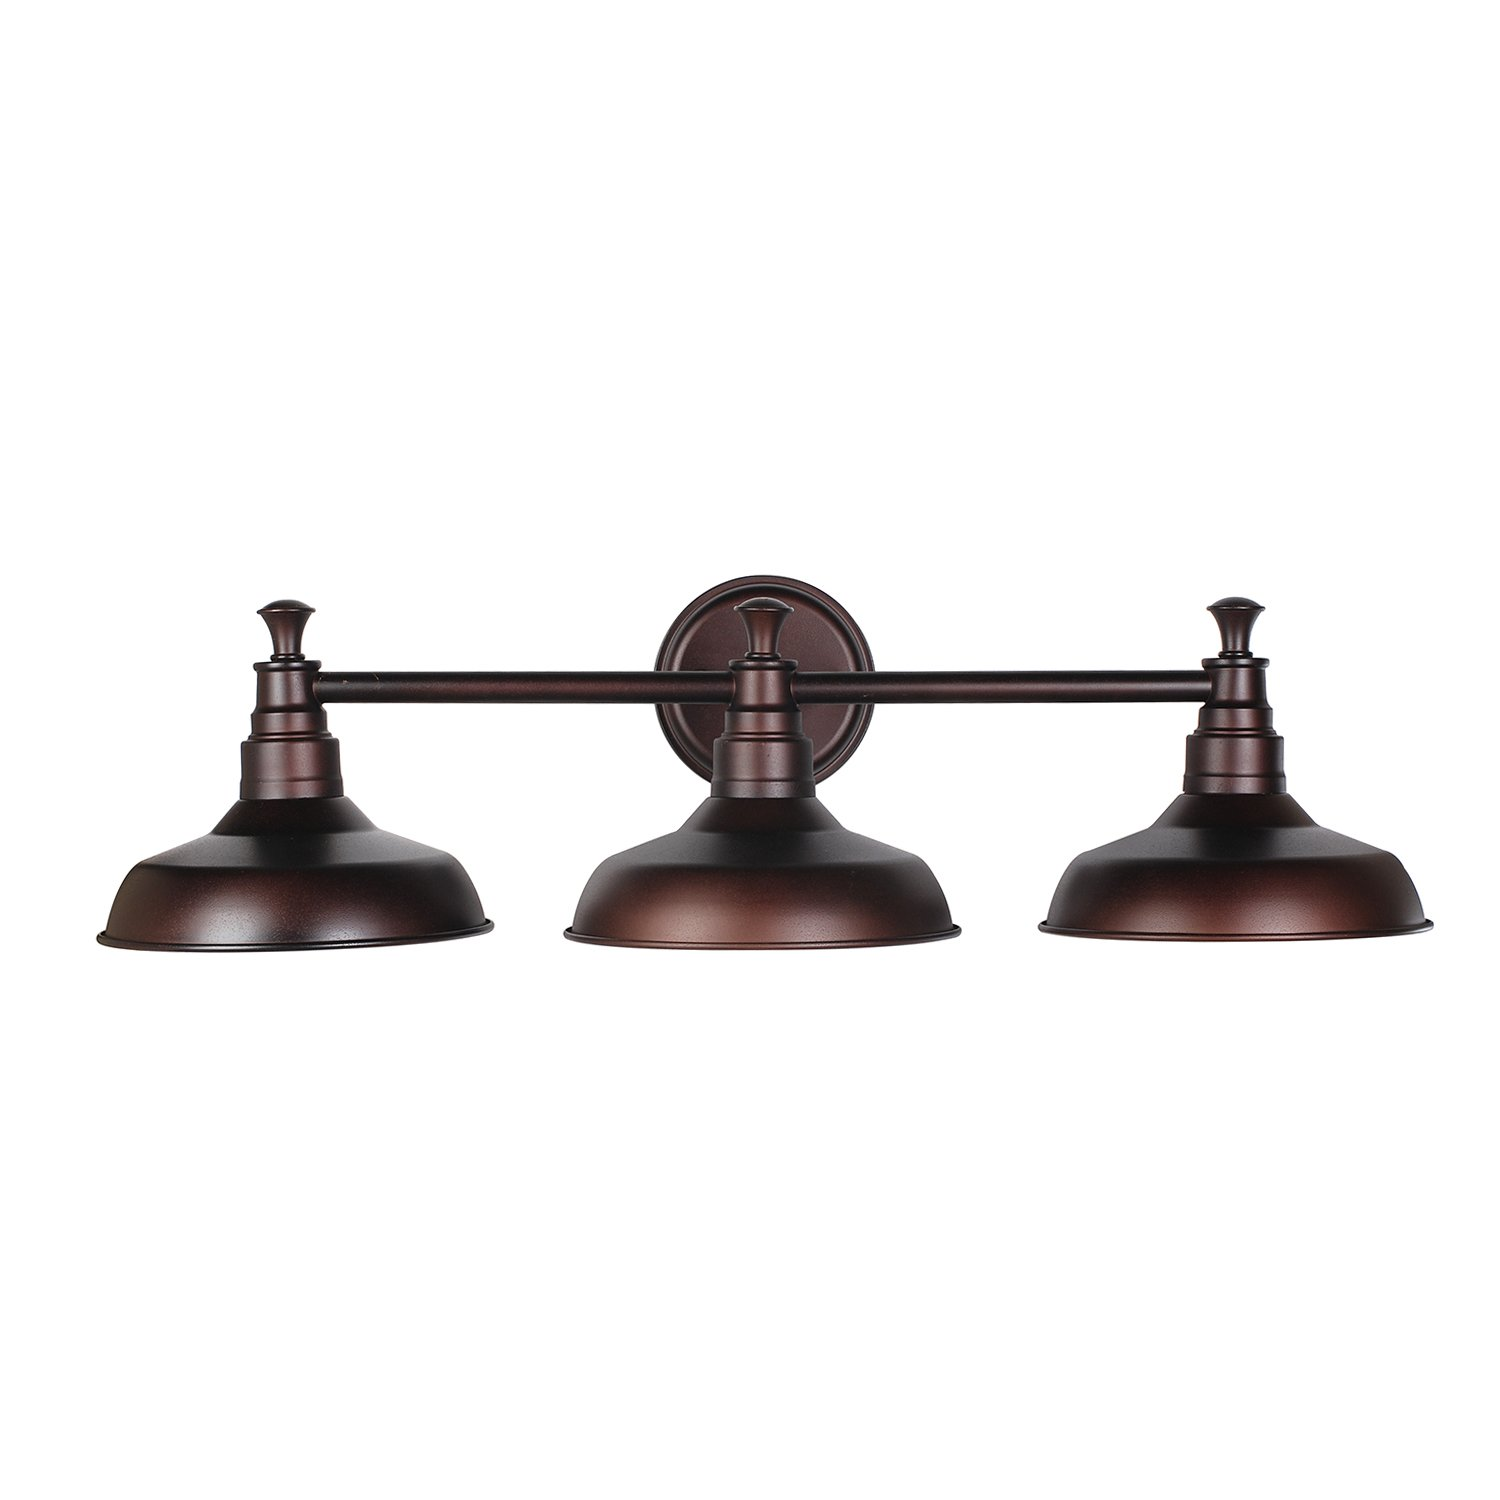 design house 520320 kimball 3 light vanity light bronze